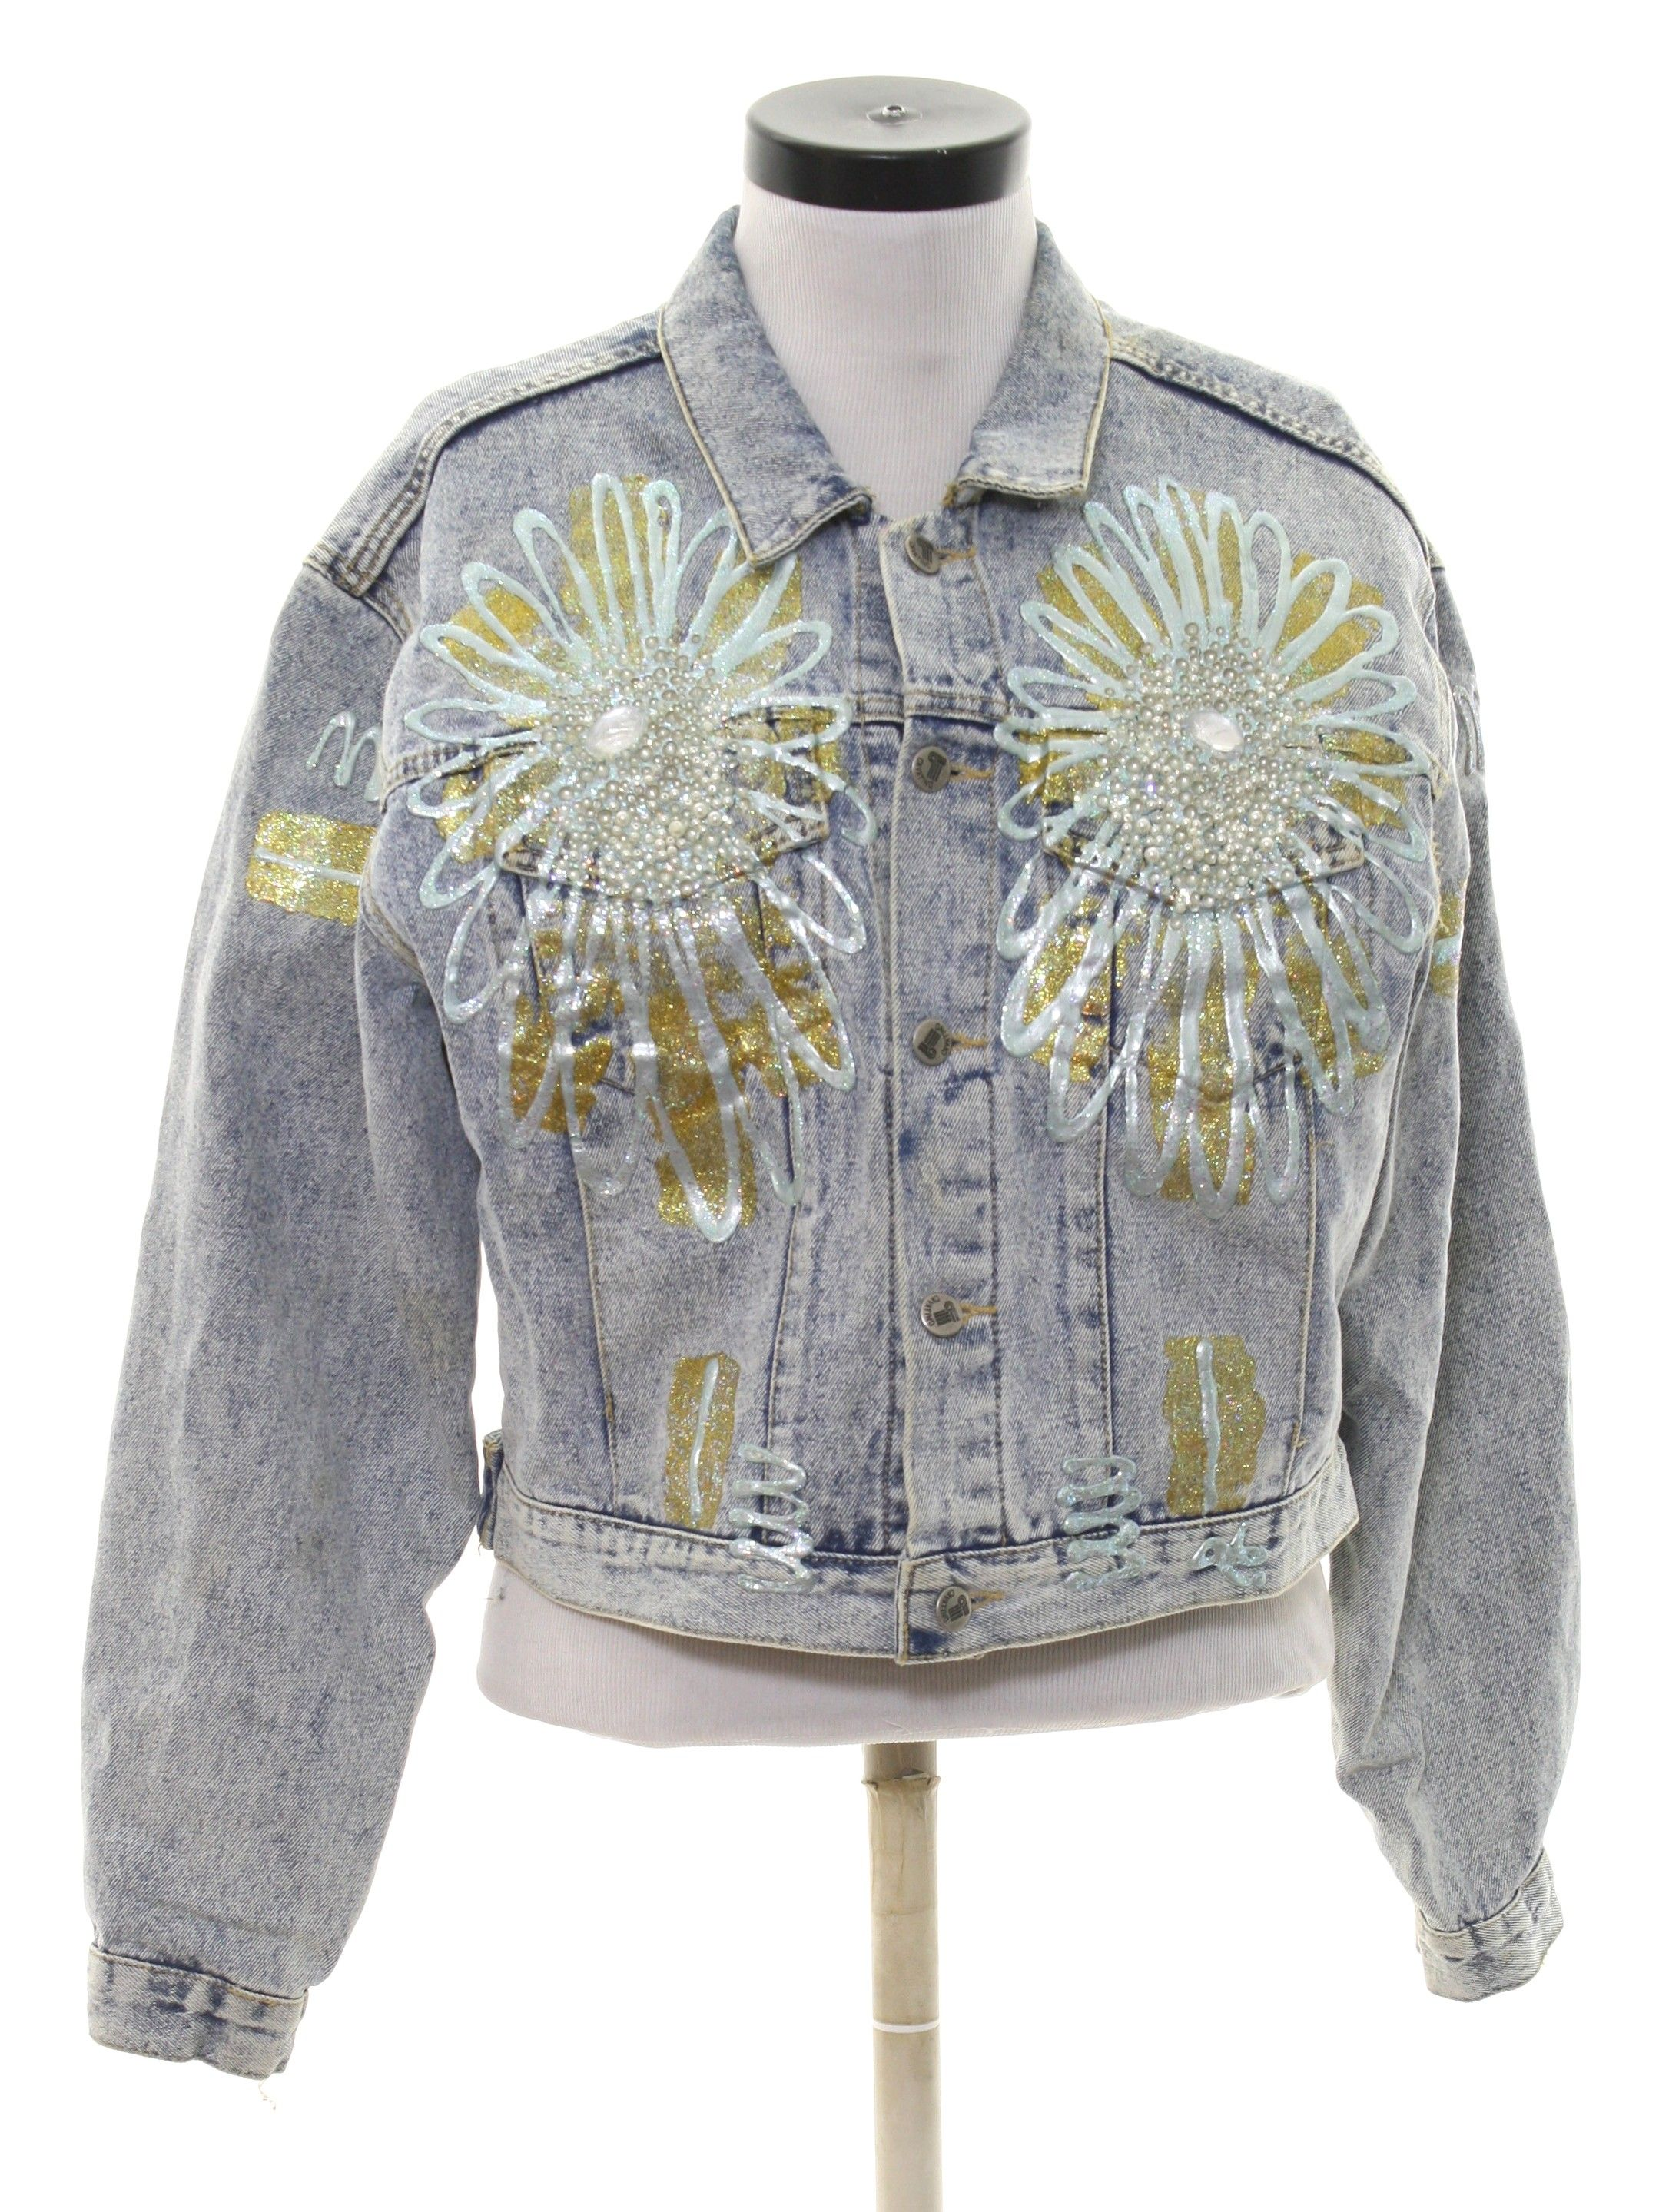 1980's Cavatino Womens Totally 80s Acid Washed Denim Jacket is part of Vintage Clothes Grunge - Late 80s Cavatino Womens blue acid washed background cotton denim button cuff longsleeve button front totally 80s acid washed denim jacket  Jacket has fancy glittery white and gold floral puff painting on both sides of the front chest and sleeves with faux pearl detail  Fold over collar  Two lower front side entry inset pockets and square waistline  Inside is unlined  The back of the jacket has more puff painting across the shoulders  Some of the pearls are missing from the front, can add some of your own or wear as is and there is some light yellowing on the lower button front (not very noticeable)